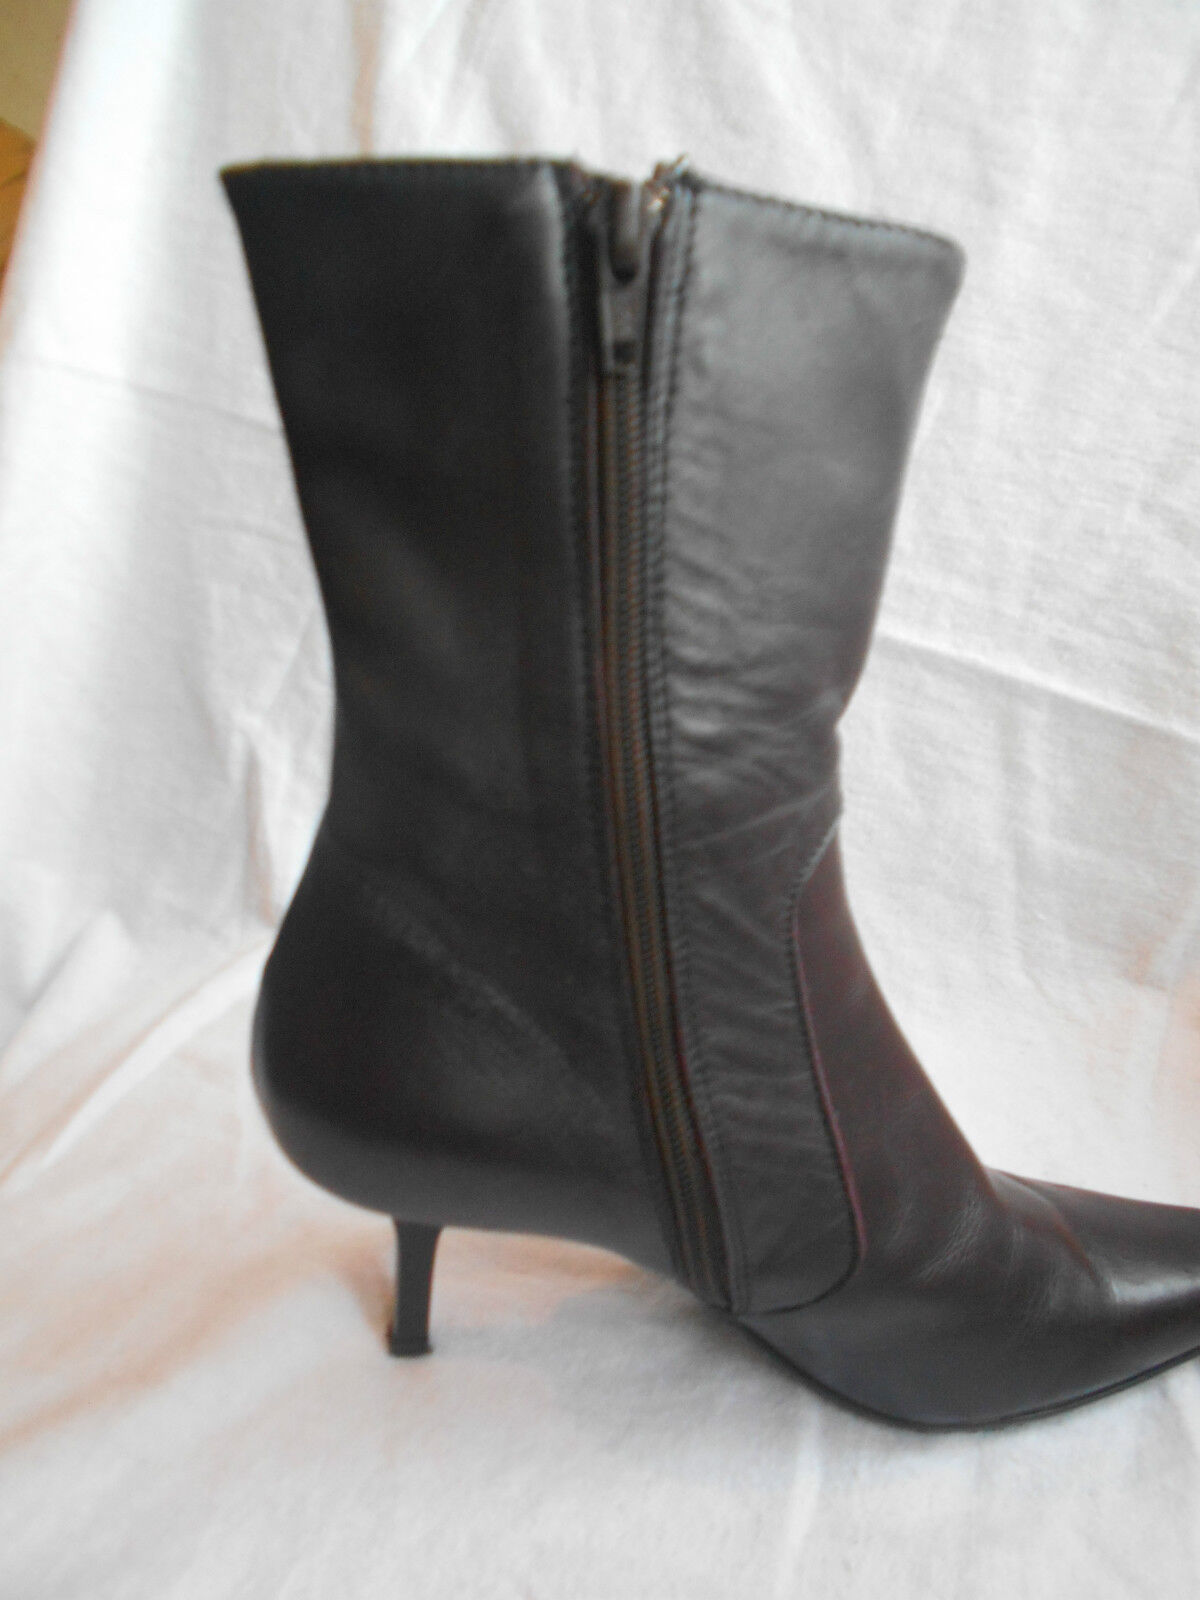 Max Monelli Boots Brown 100Leather Kitten Mid-Calf Boots Monelli size UK 4 Used Once RPP ac3068